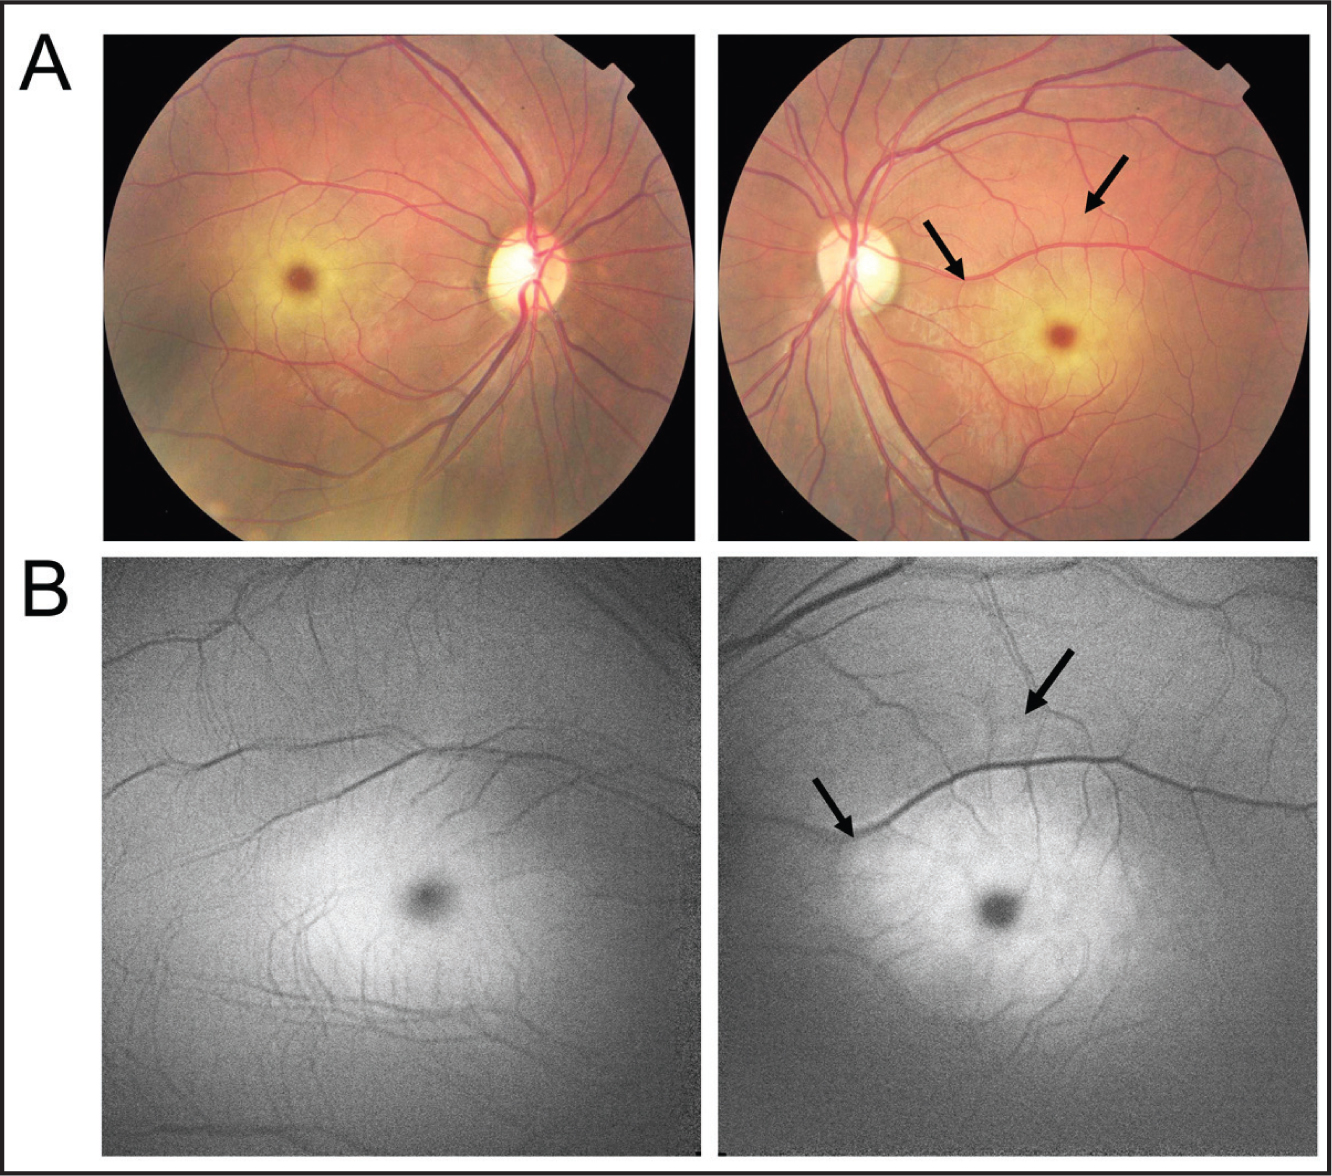 Fundus photographs and fundus autofluorescence (FAF) images. (A) Fundus photographs showing cherry-red spot in both maculas. (B) FAF images showing abnormal hyper-autofluorescence in the macula. The lesion seen in the FAF has expanded over that seen in the fundus photograph (arrows).